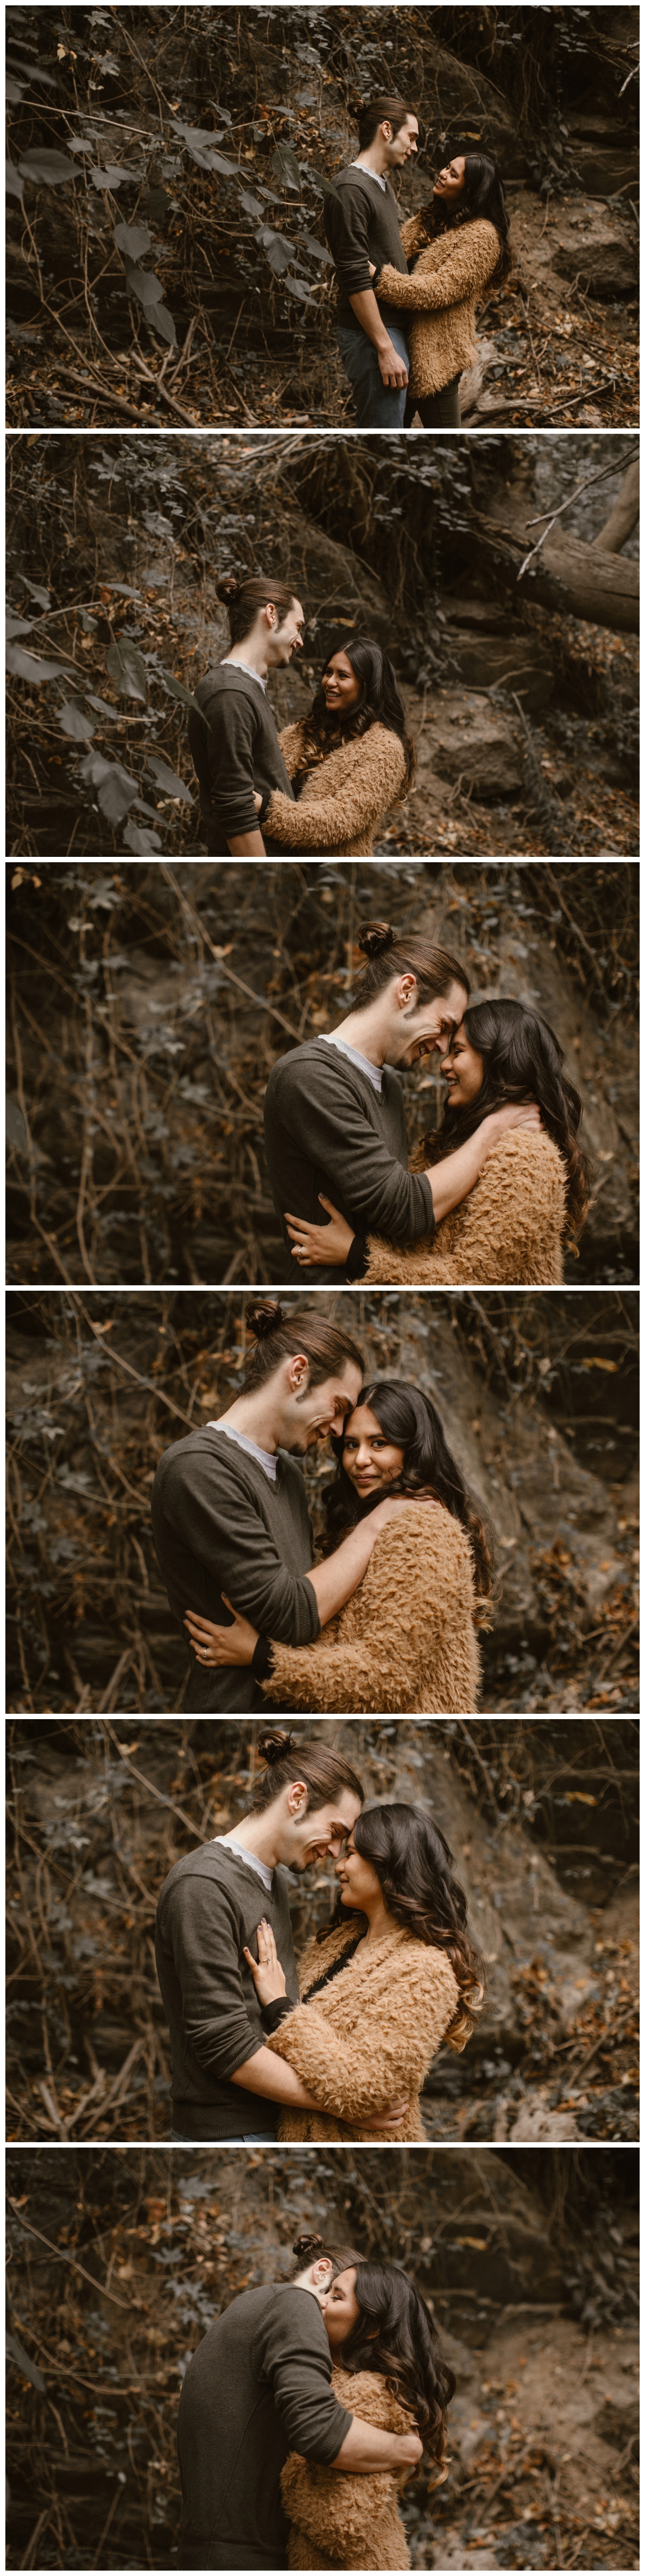 2016-11-30_0020 Brenda and Ben's Baltimore Engagement Session